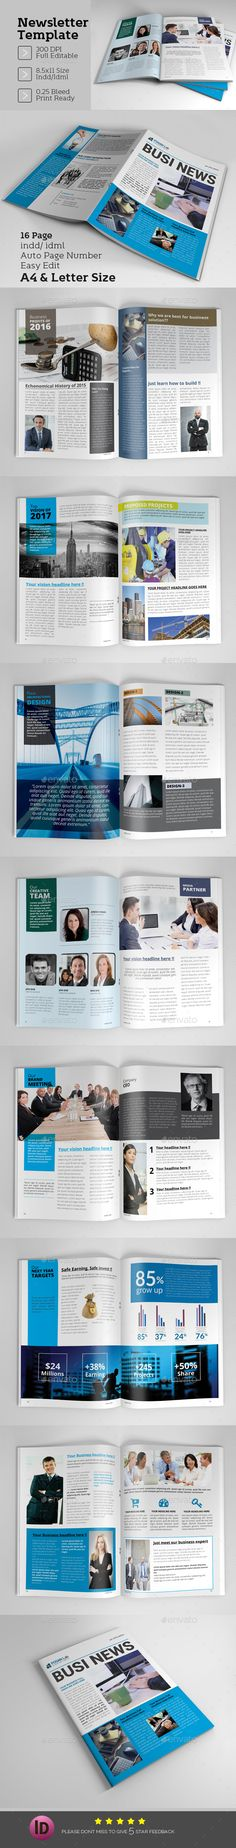 Newsletter Template  - Newsletters Print Templates Download here : https://graphicriver.net/item/newsletter-template-/16565780?s_rank=6&ref=Al-fatih